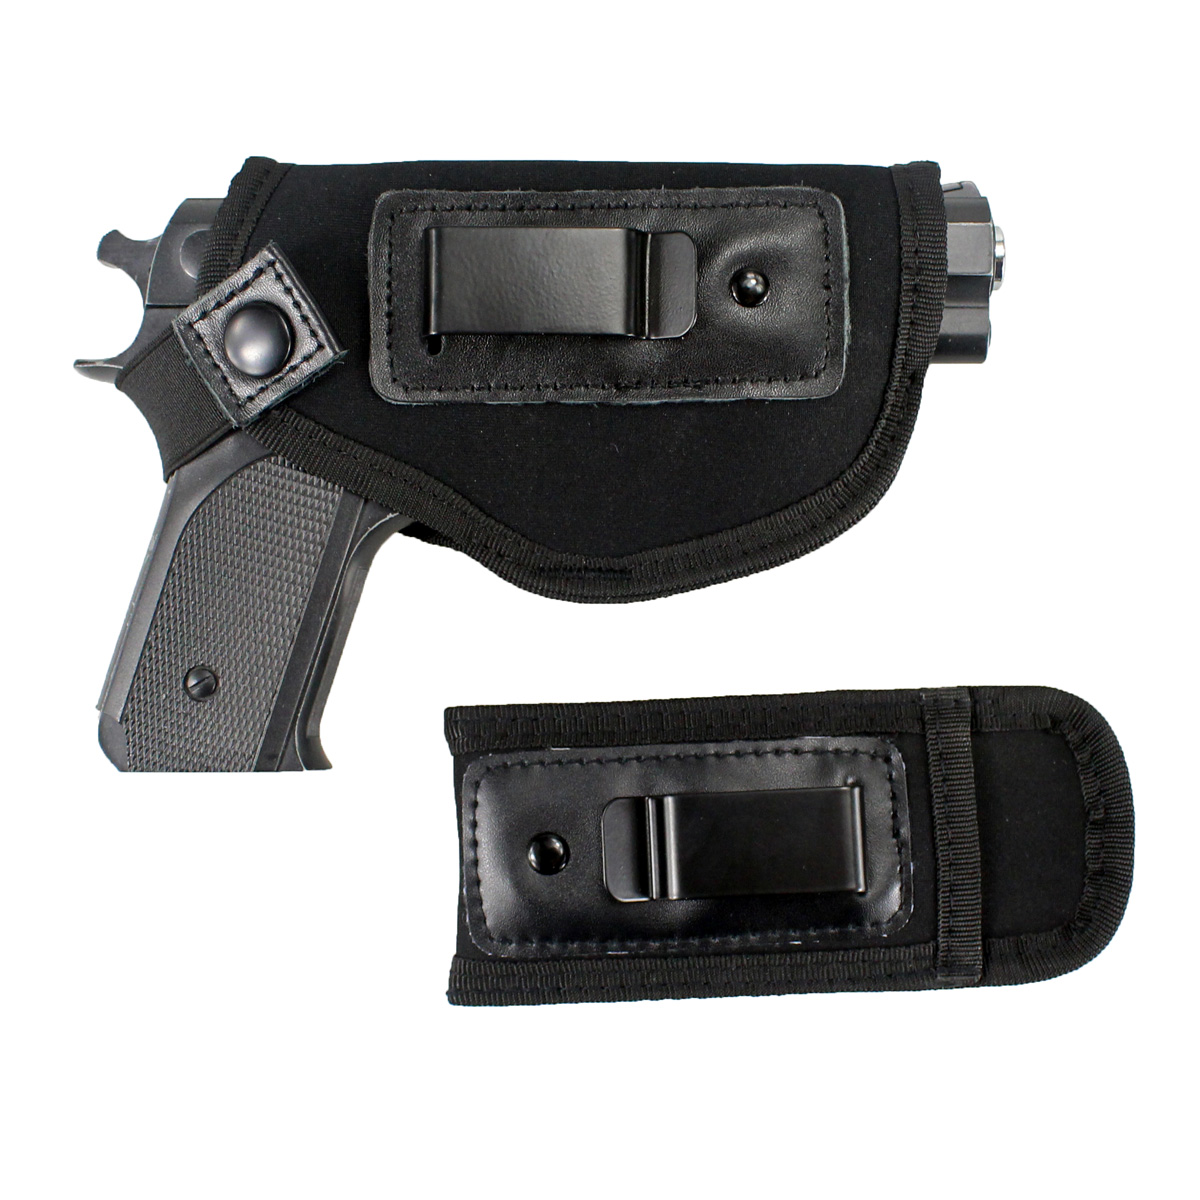 Image 5 - Tactical Concealed Carry Universal Neoprene IWB Holster with Extra Mag Holster for Right Hand-in Holsters from Sports & Entertainment